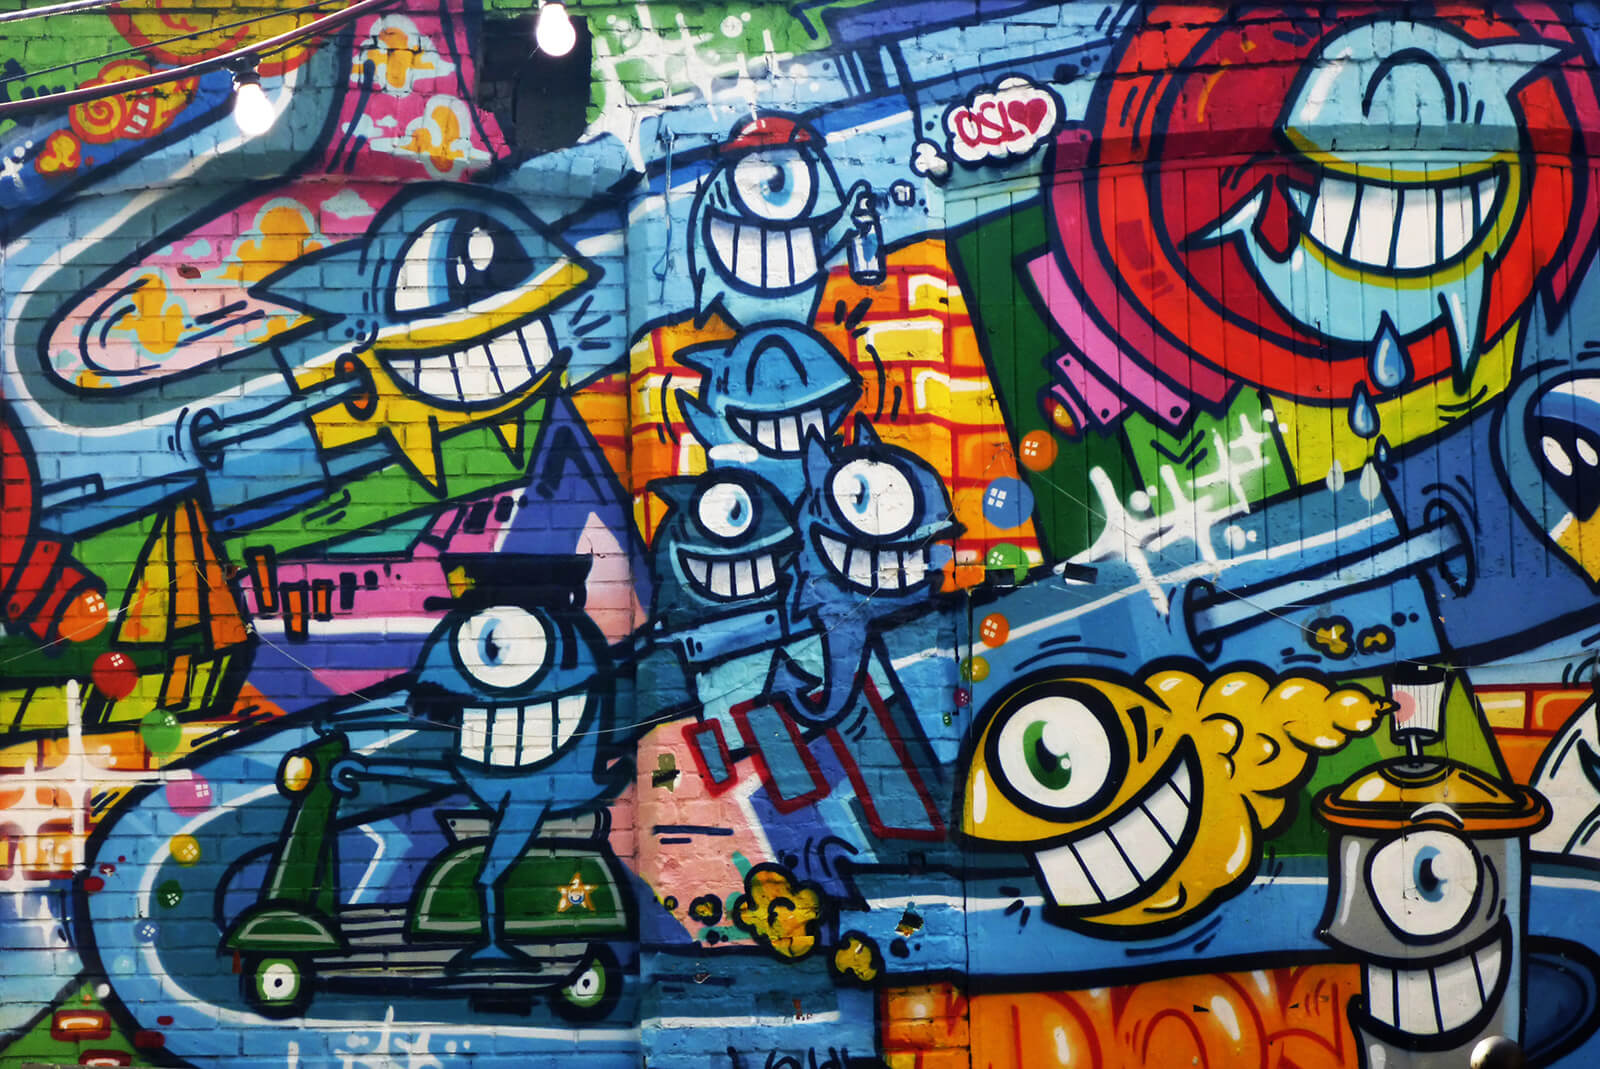 Experience the colorful and offbeat Oslo street art scene